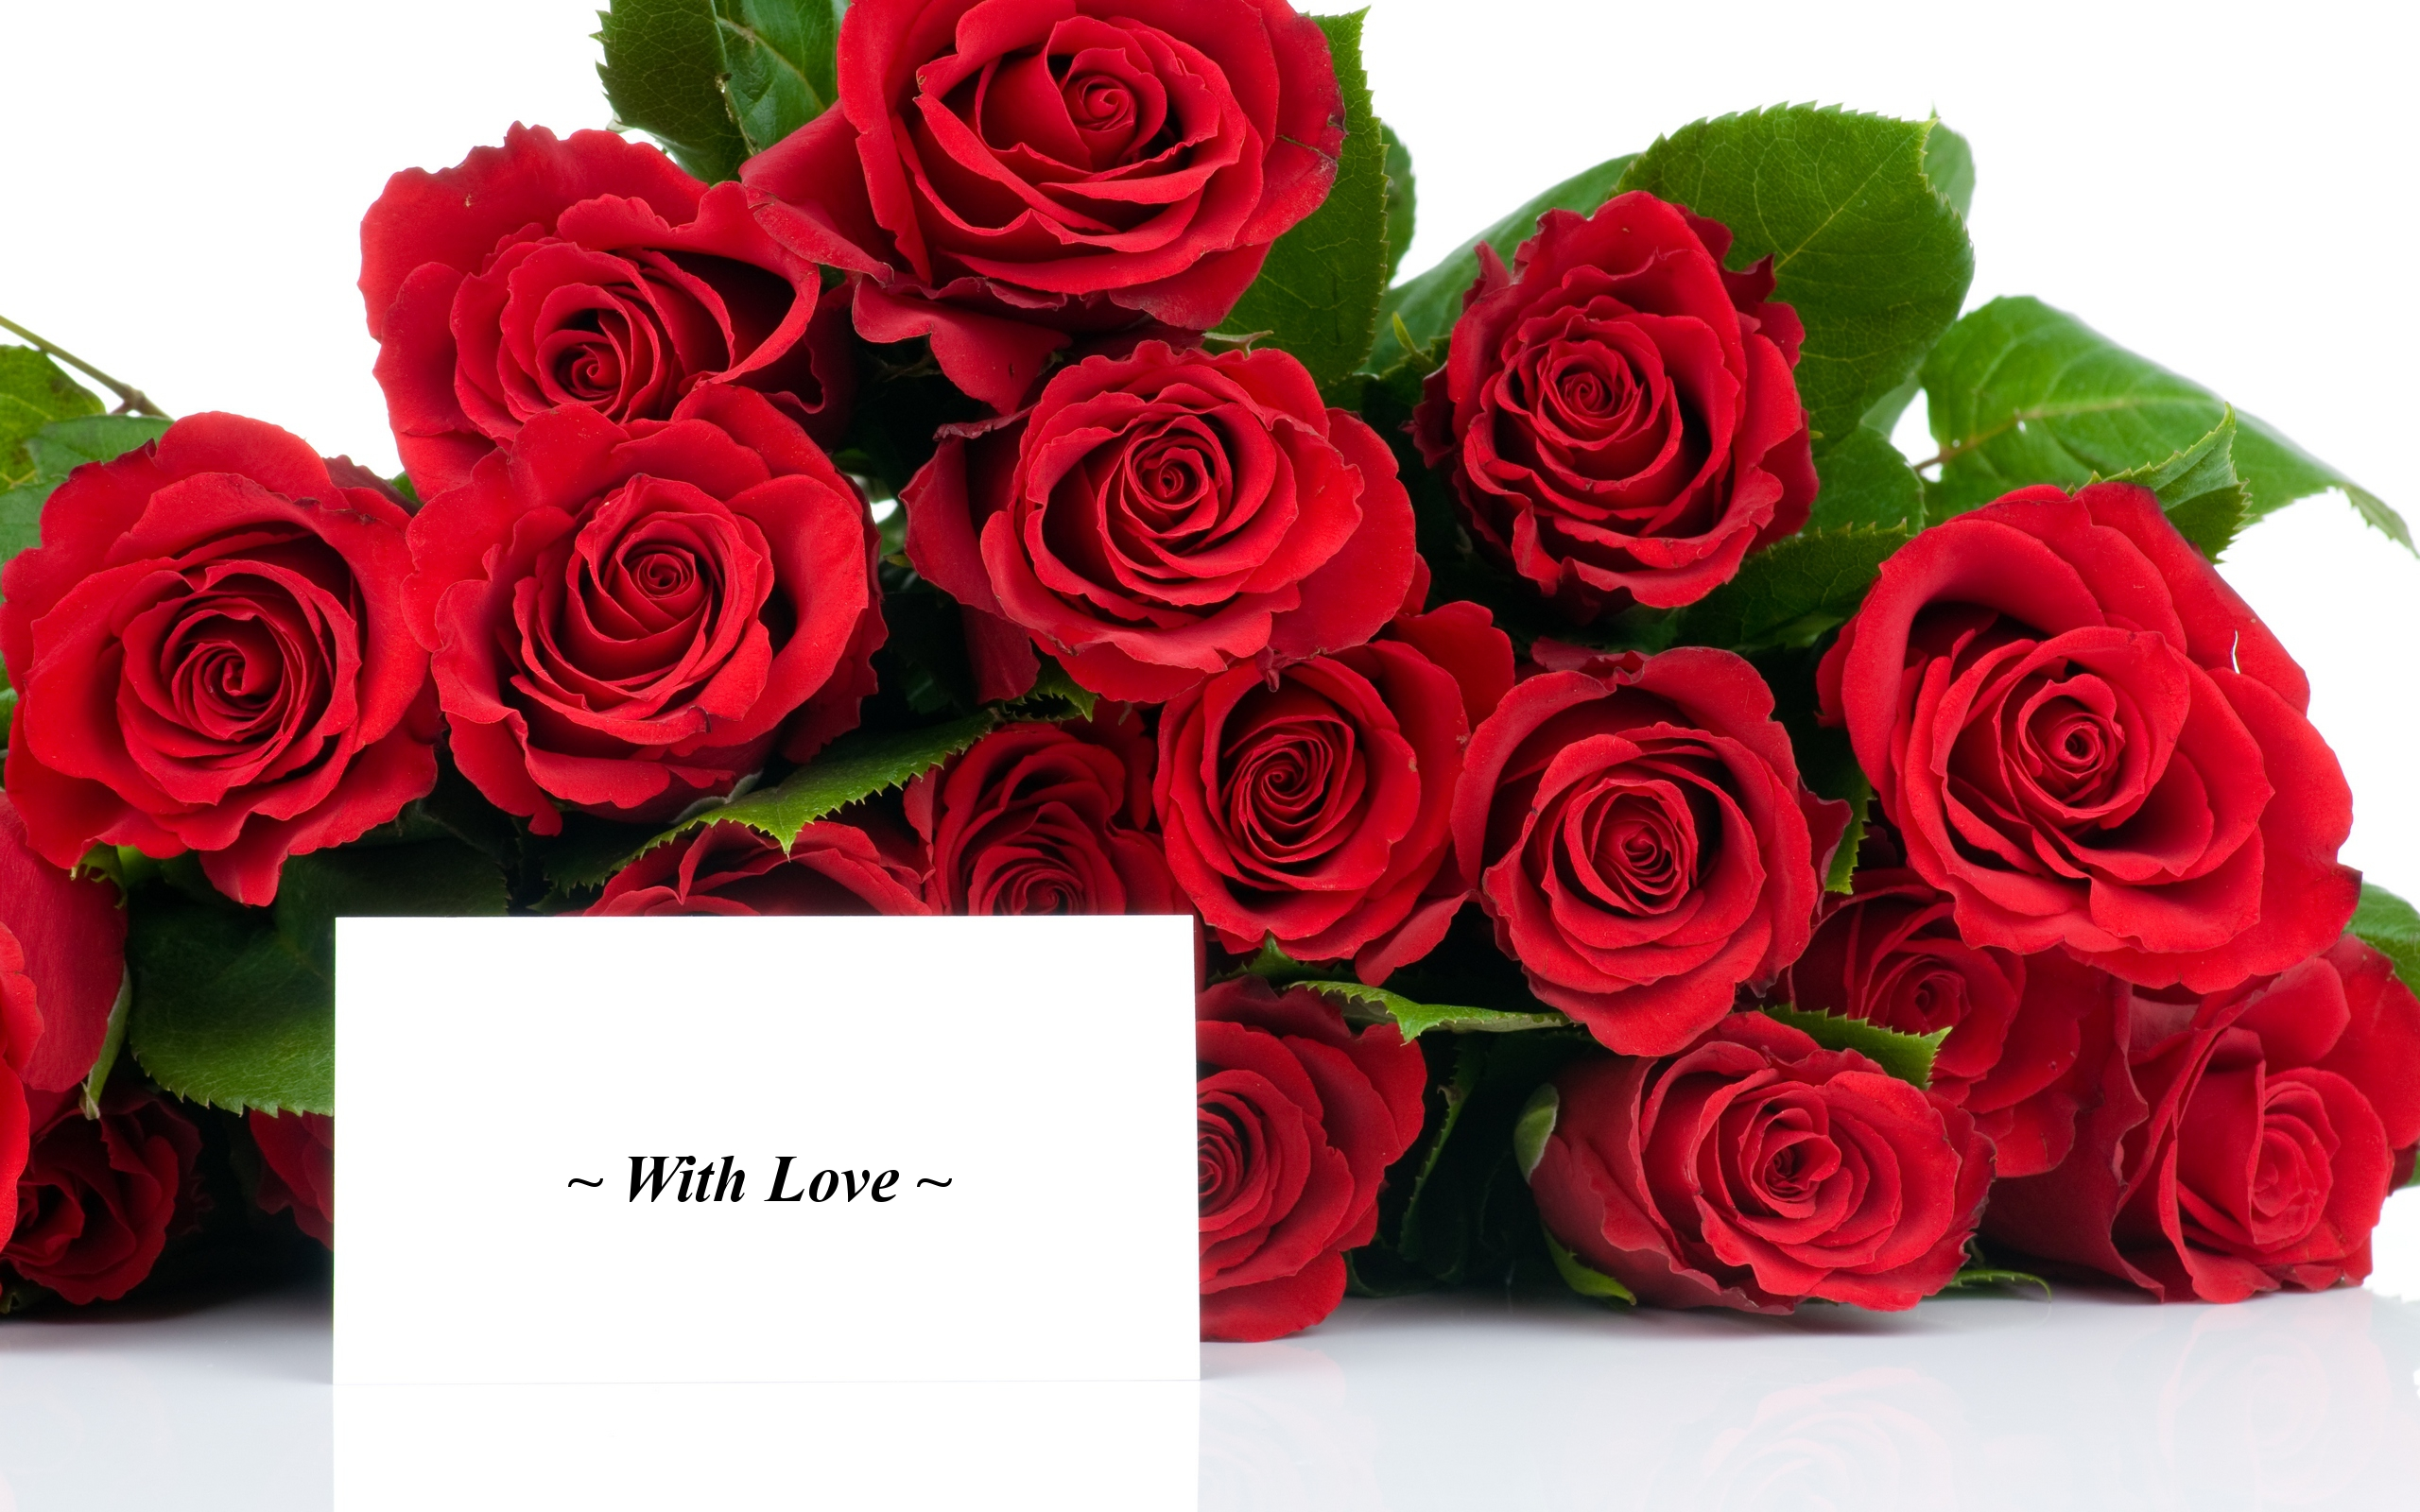 Holidays___International_Womens_Day_Bouquet_of_red_roses_on_March_8_with_the_inscription_060675_.jpg